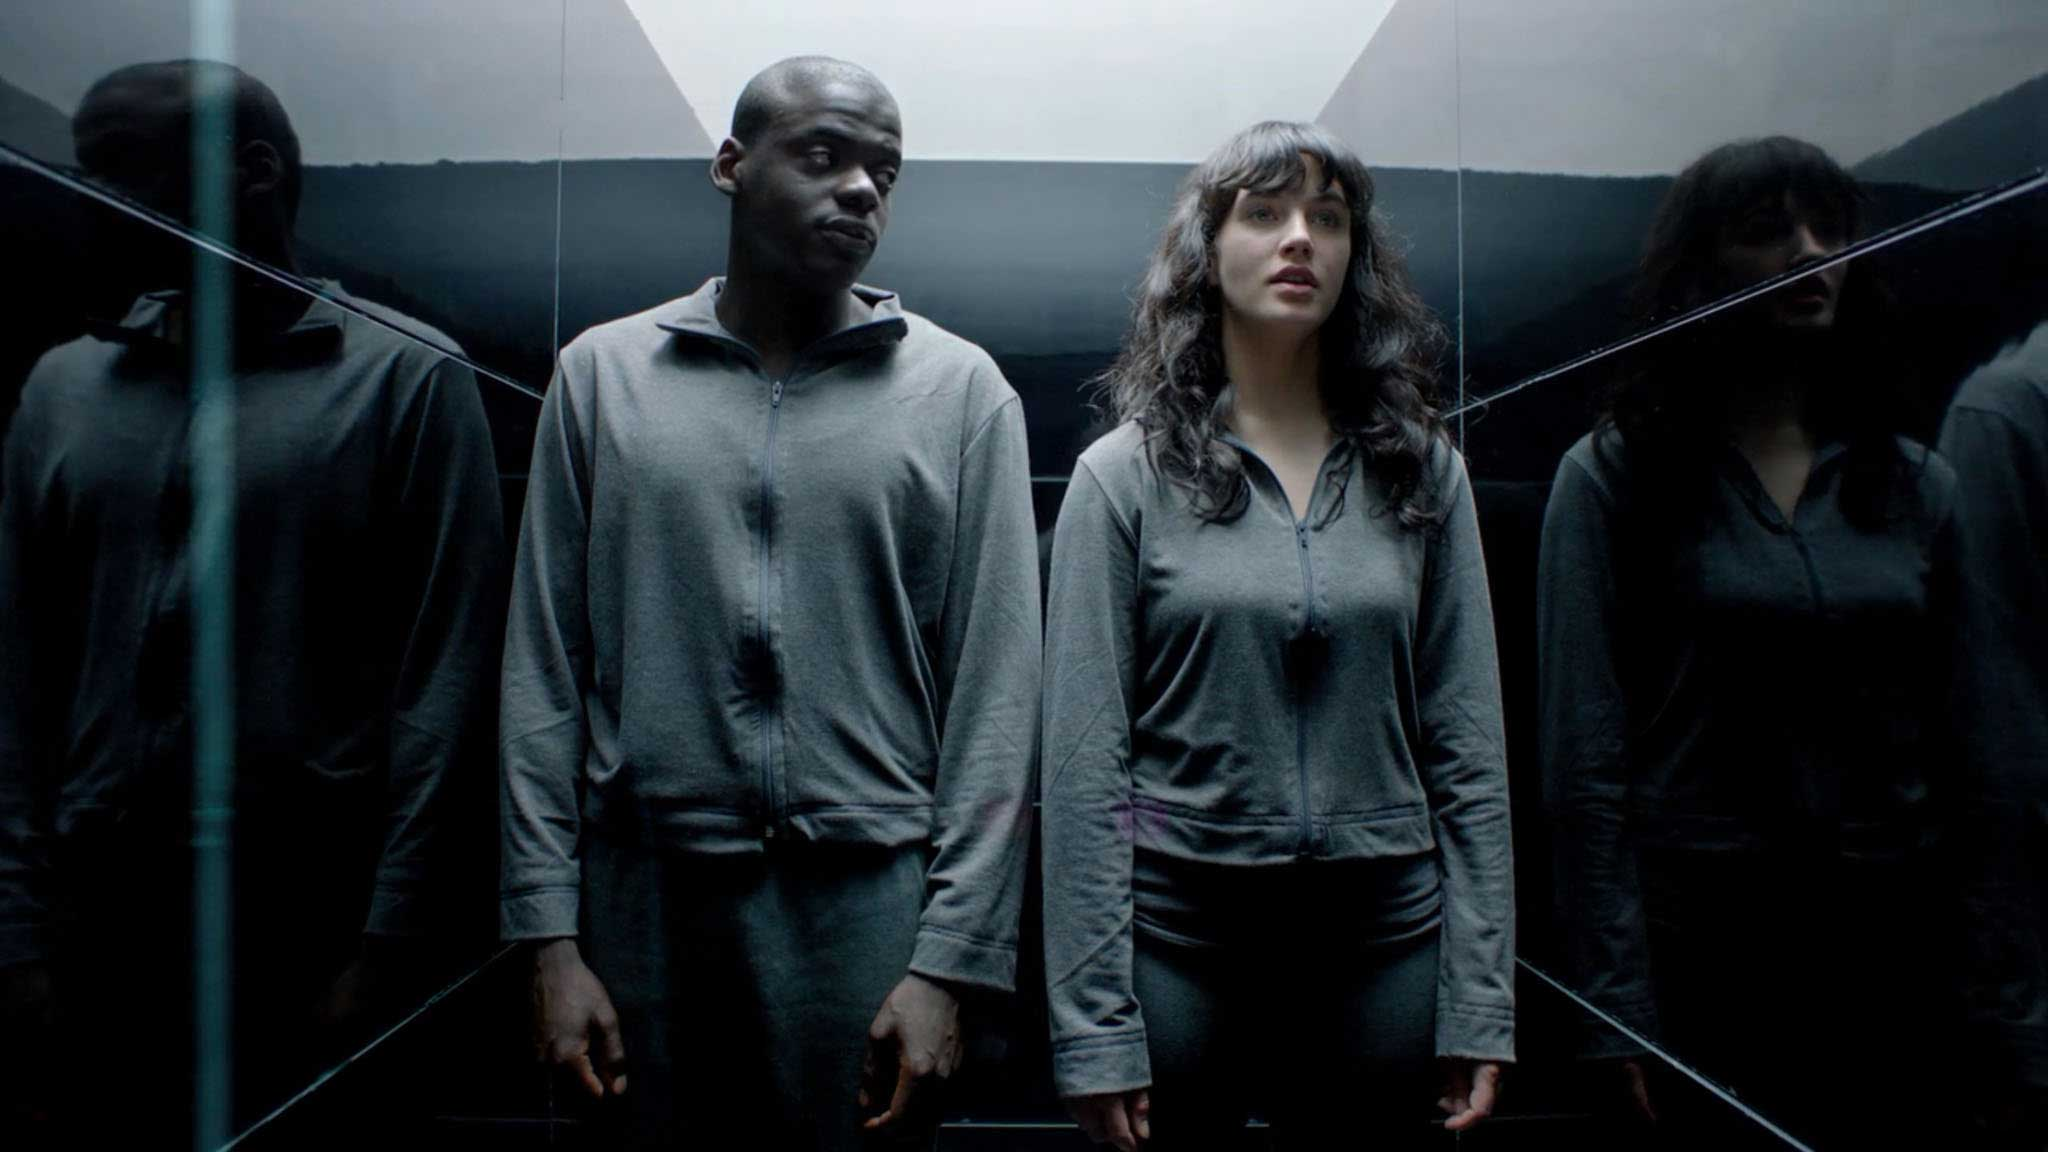 Casal de Fifteen Million Merits, episódio de Black Mirror.